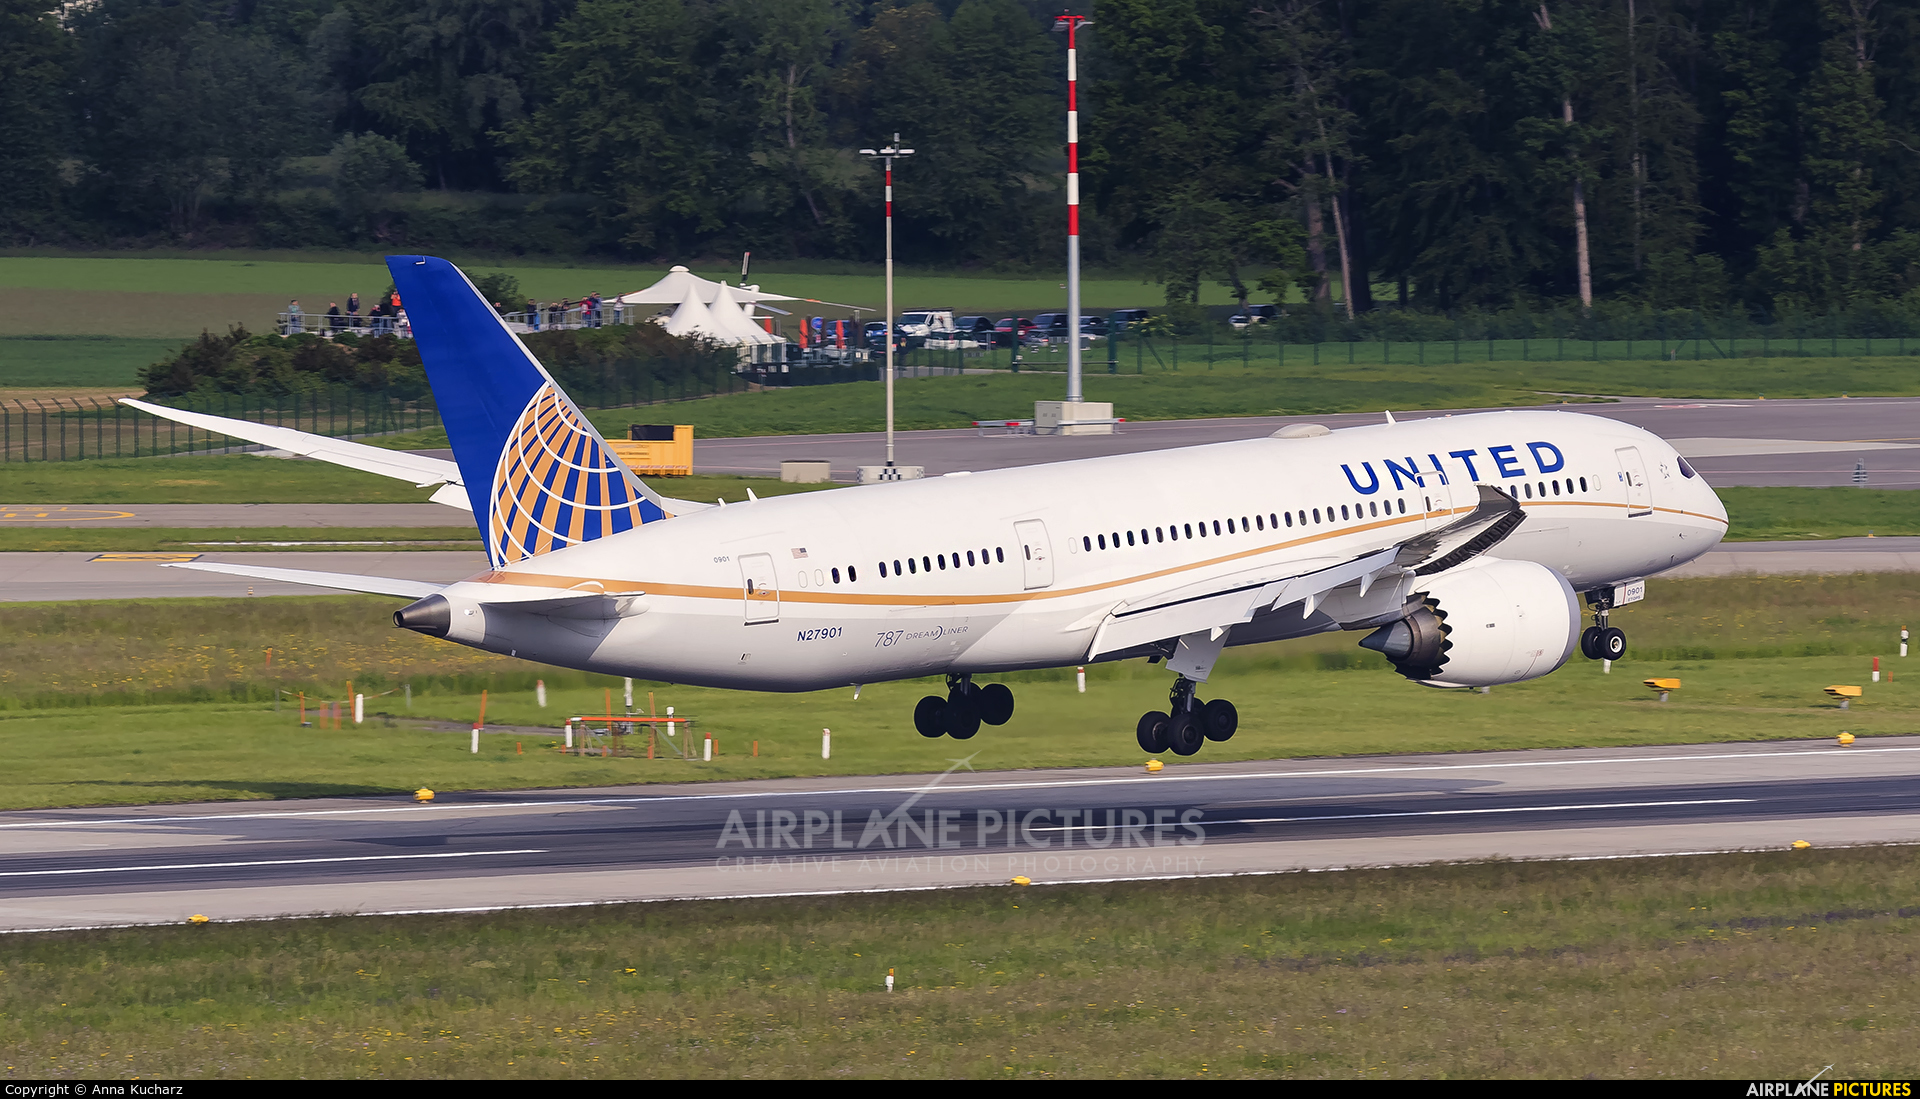 United Airlines N27901 aircraft at Zurich